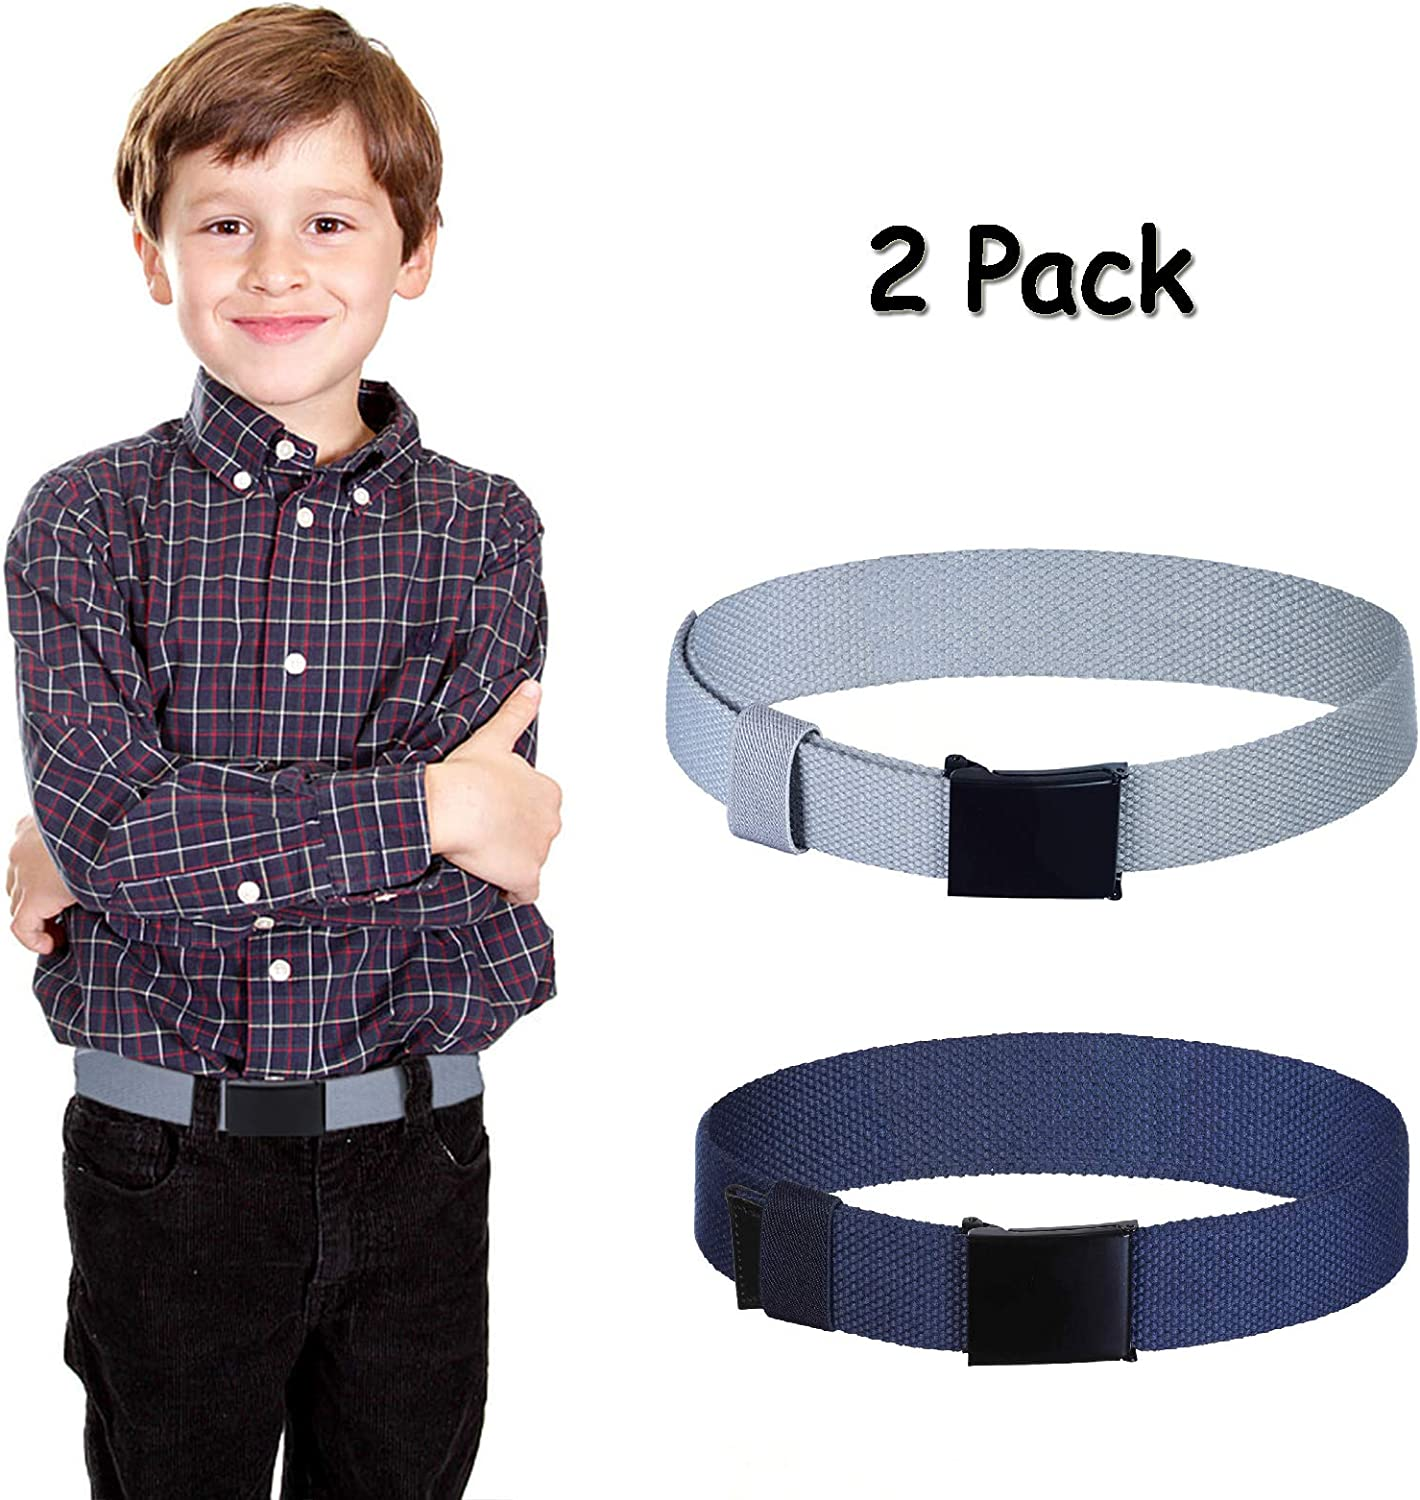 Boys Kids Cotton Canvas Belts 2Pcs Adjustable Canvas Web Belt with Flip Top Buckle for Child